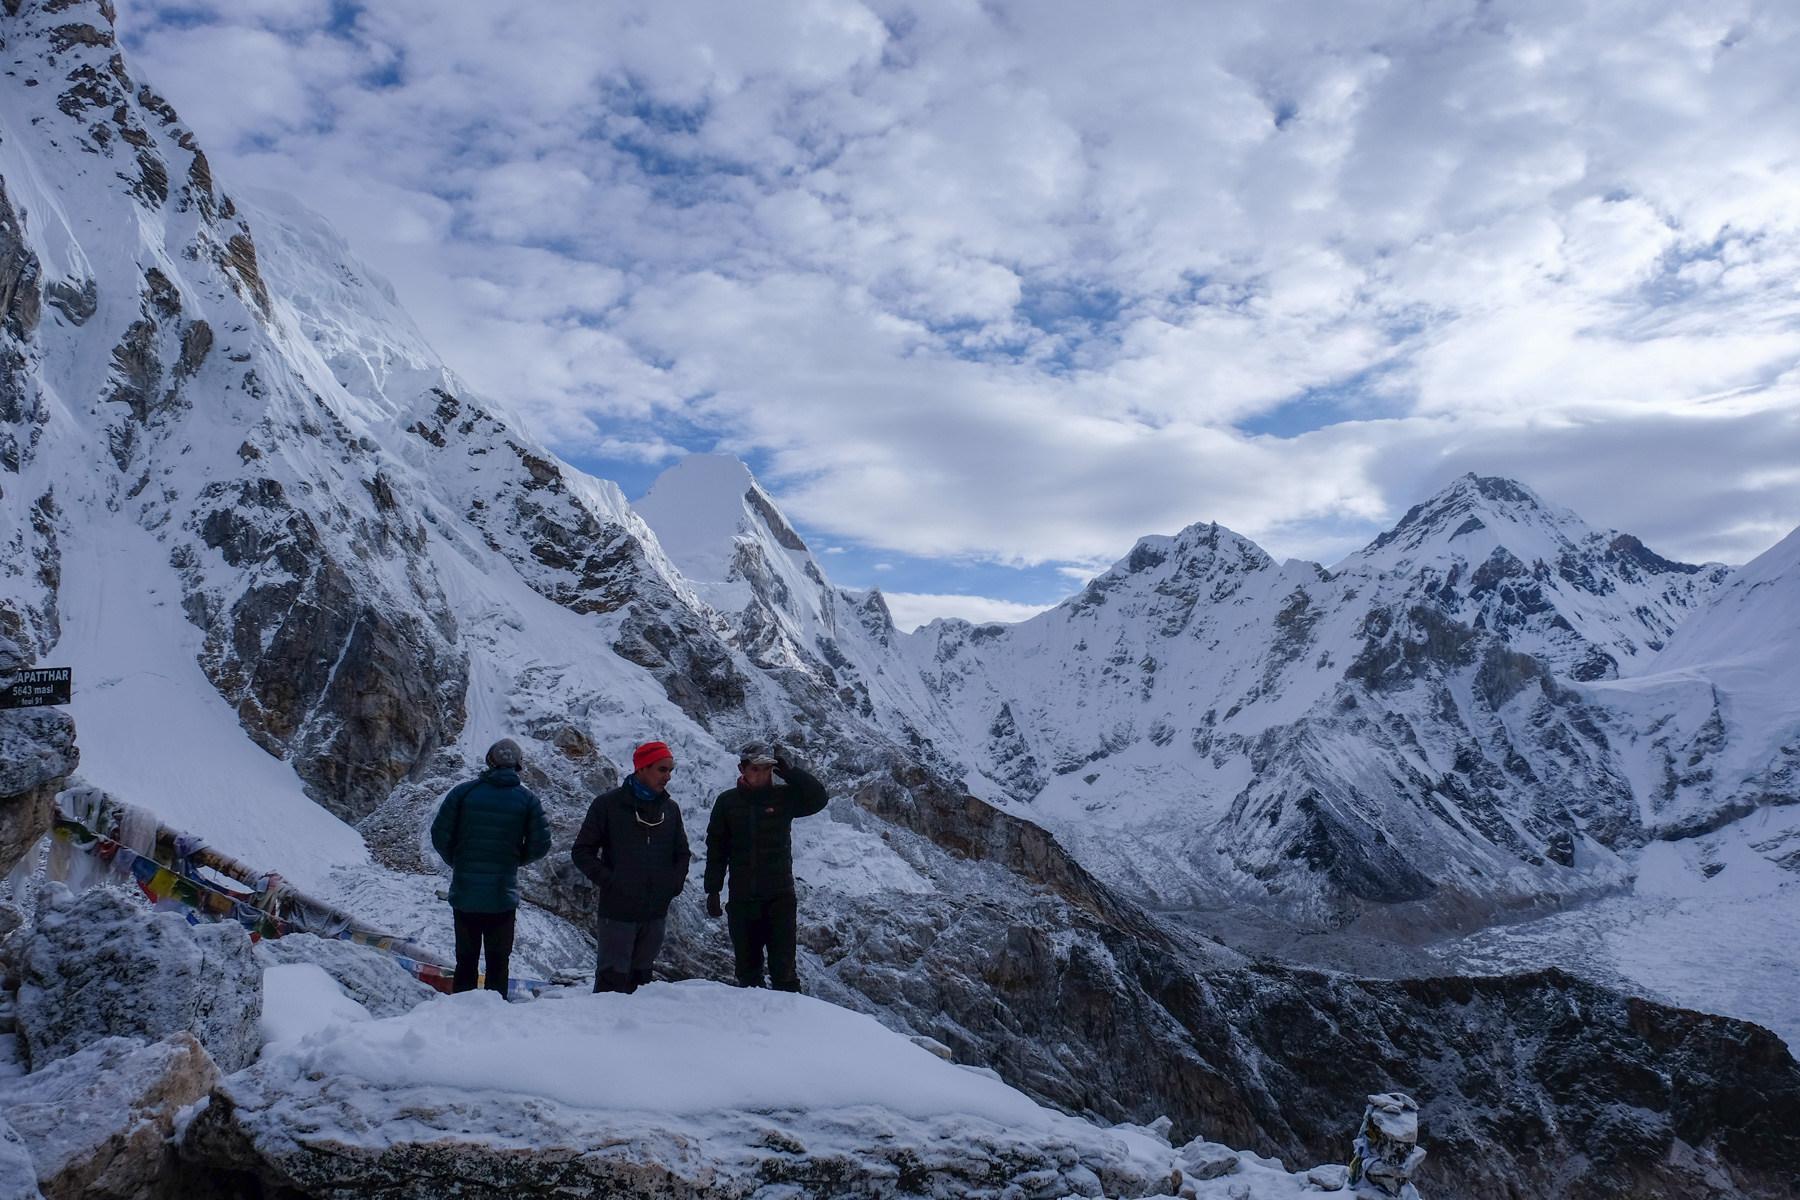 Kala Patthar & Gokyo, Everest 3 pass #3 12